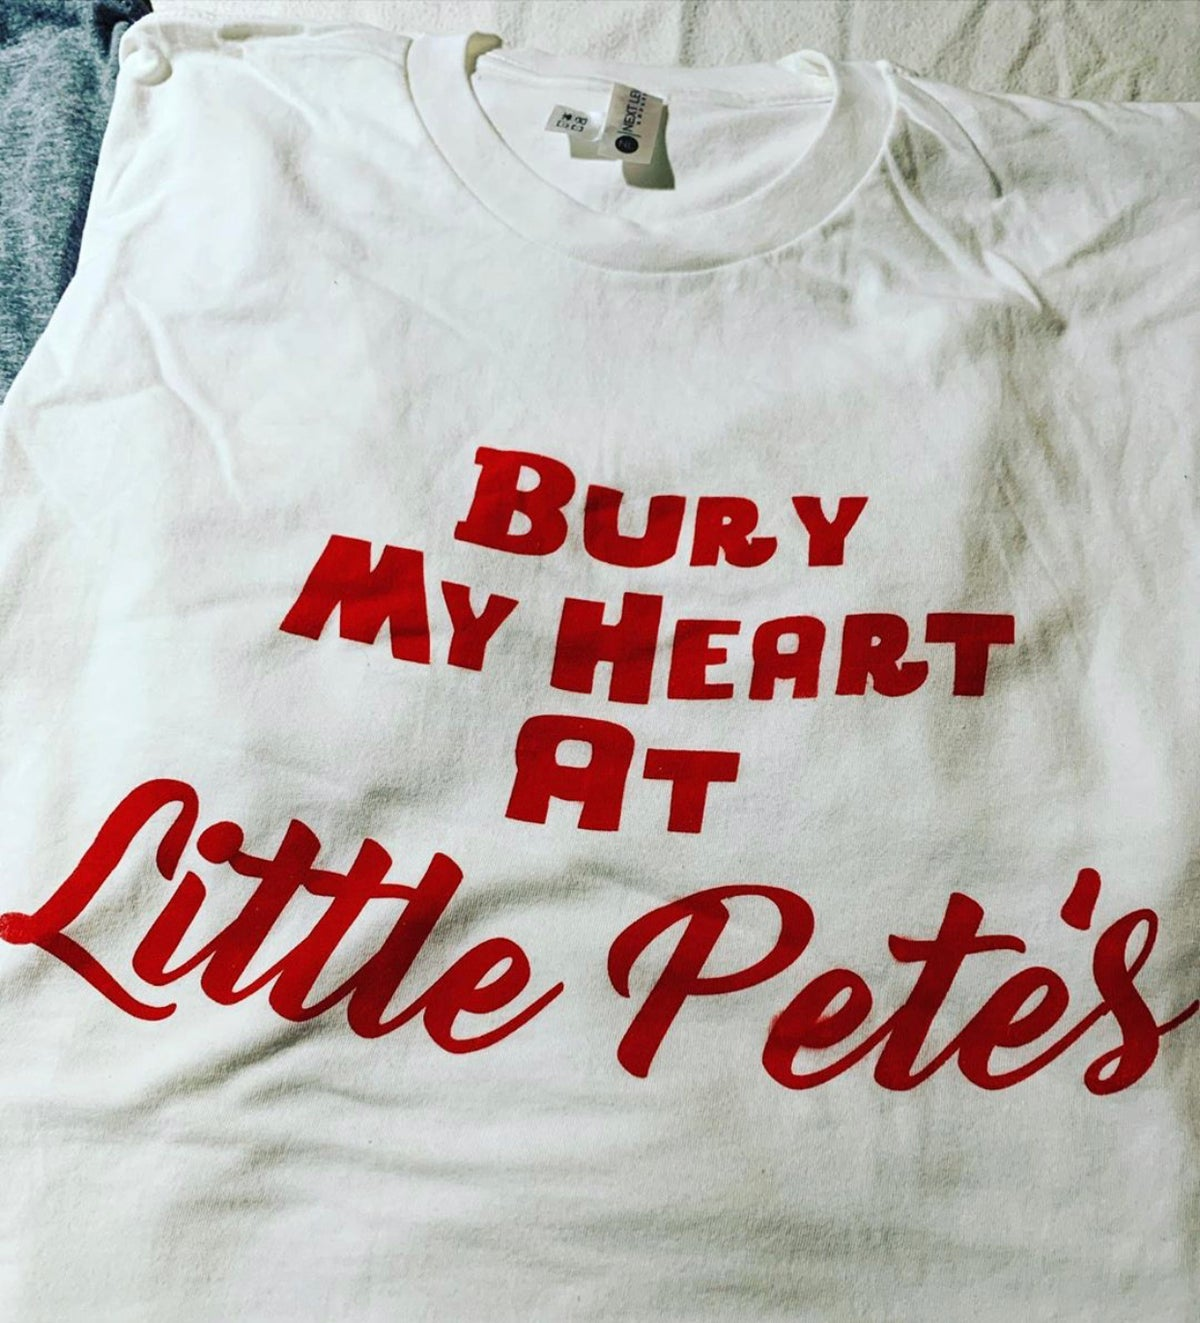 Image of Bury My Heart At Little Pete's Tee